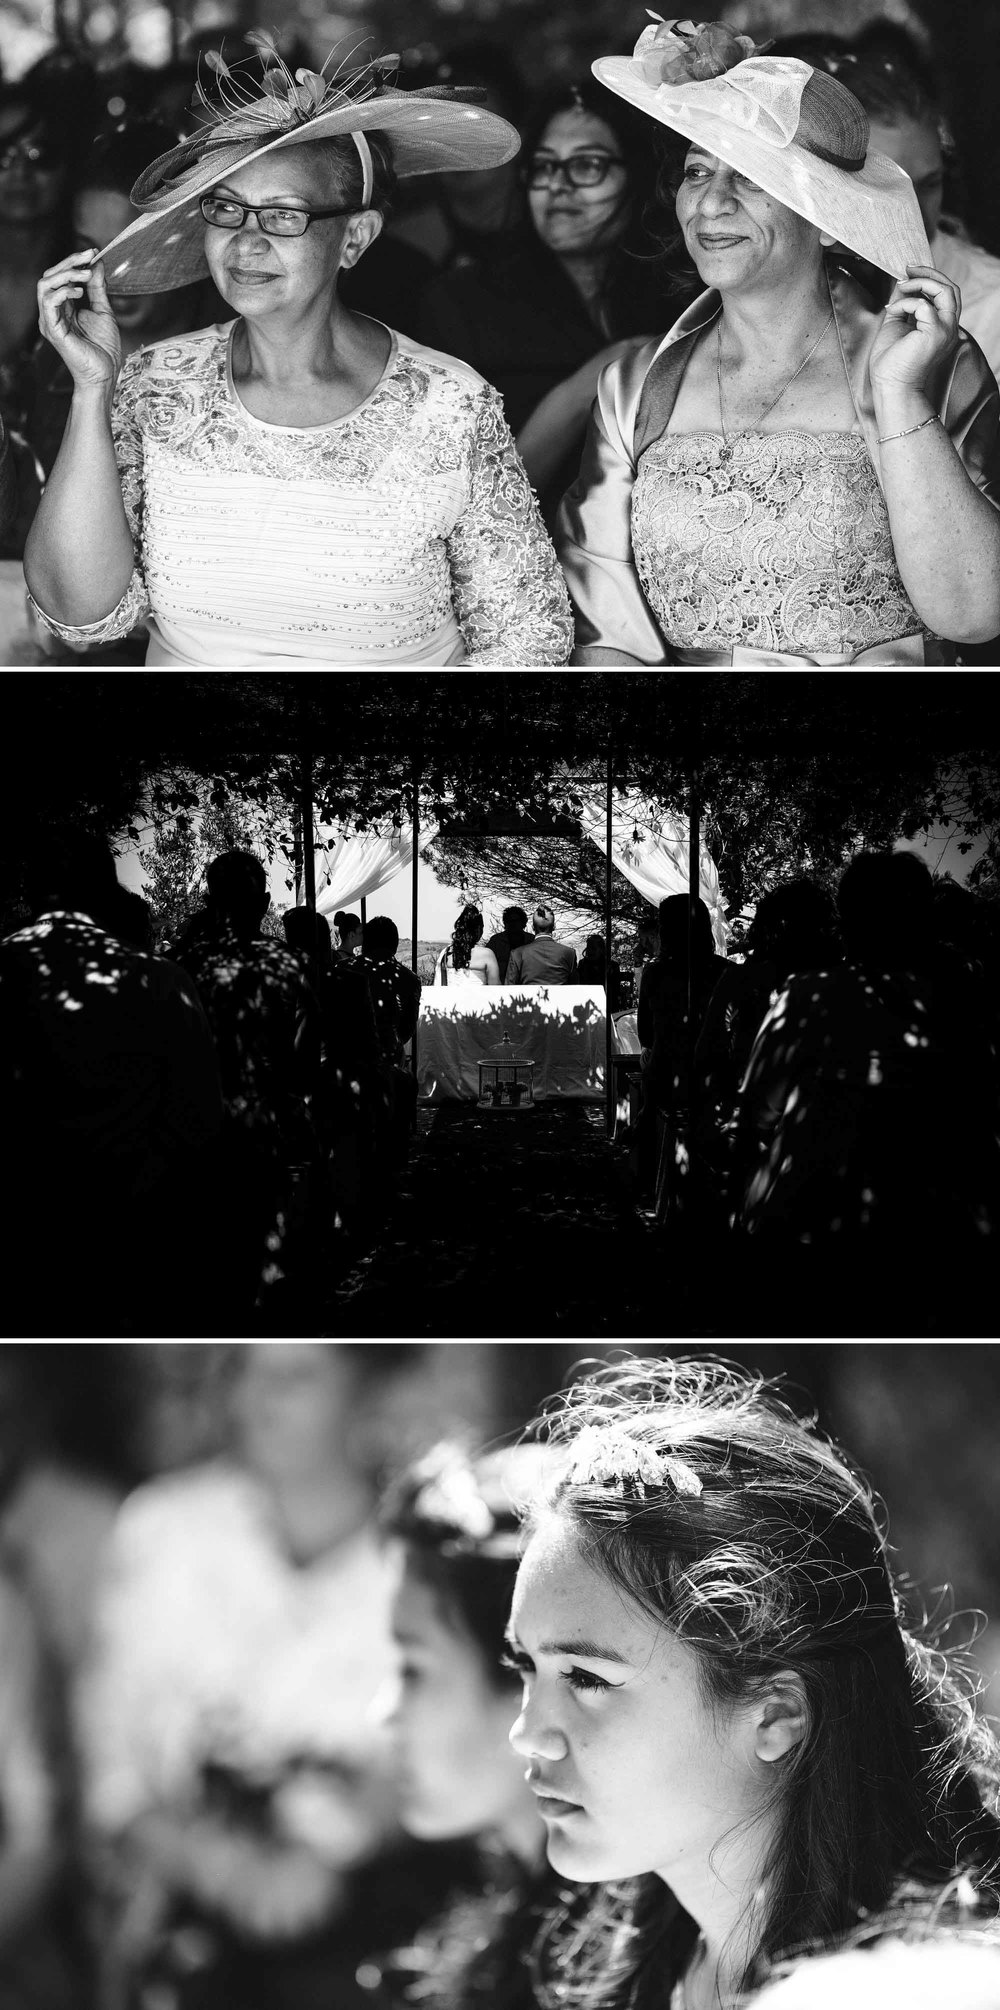 Portugal-Wedding-Photographer-63.jpg